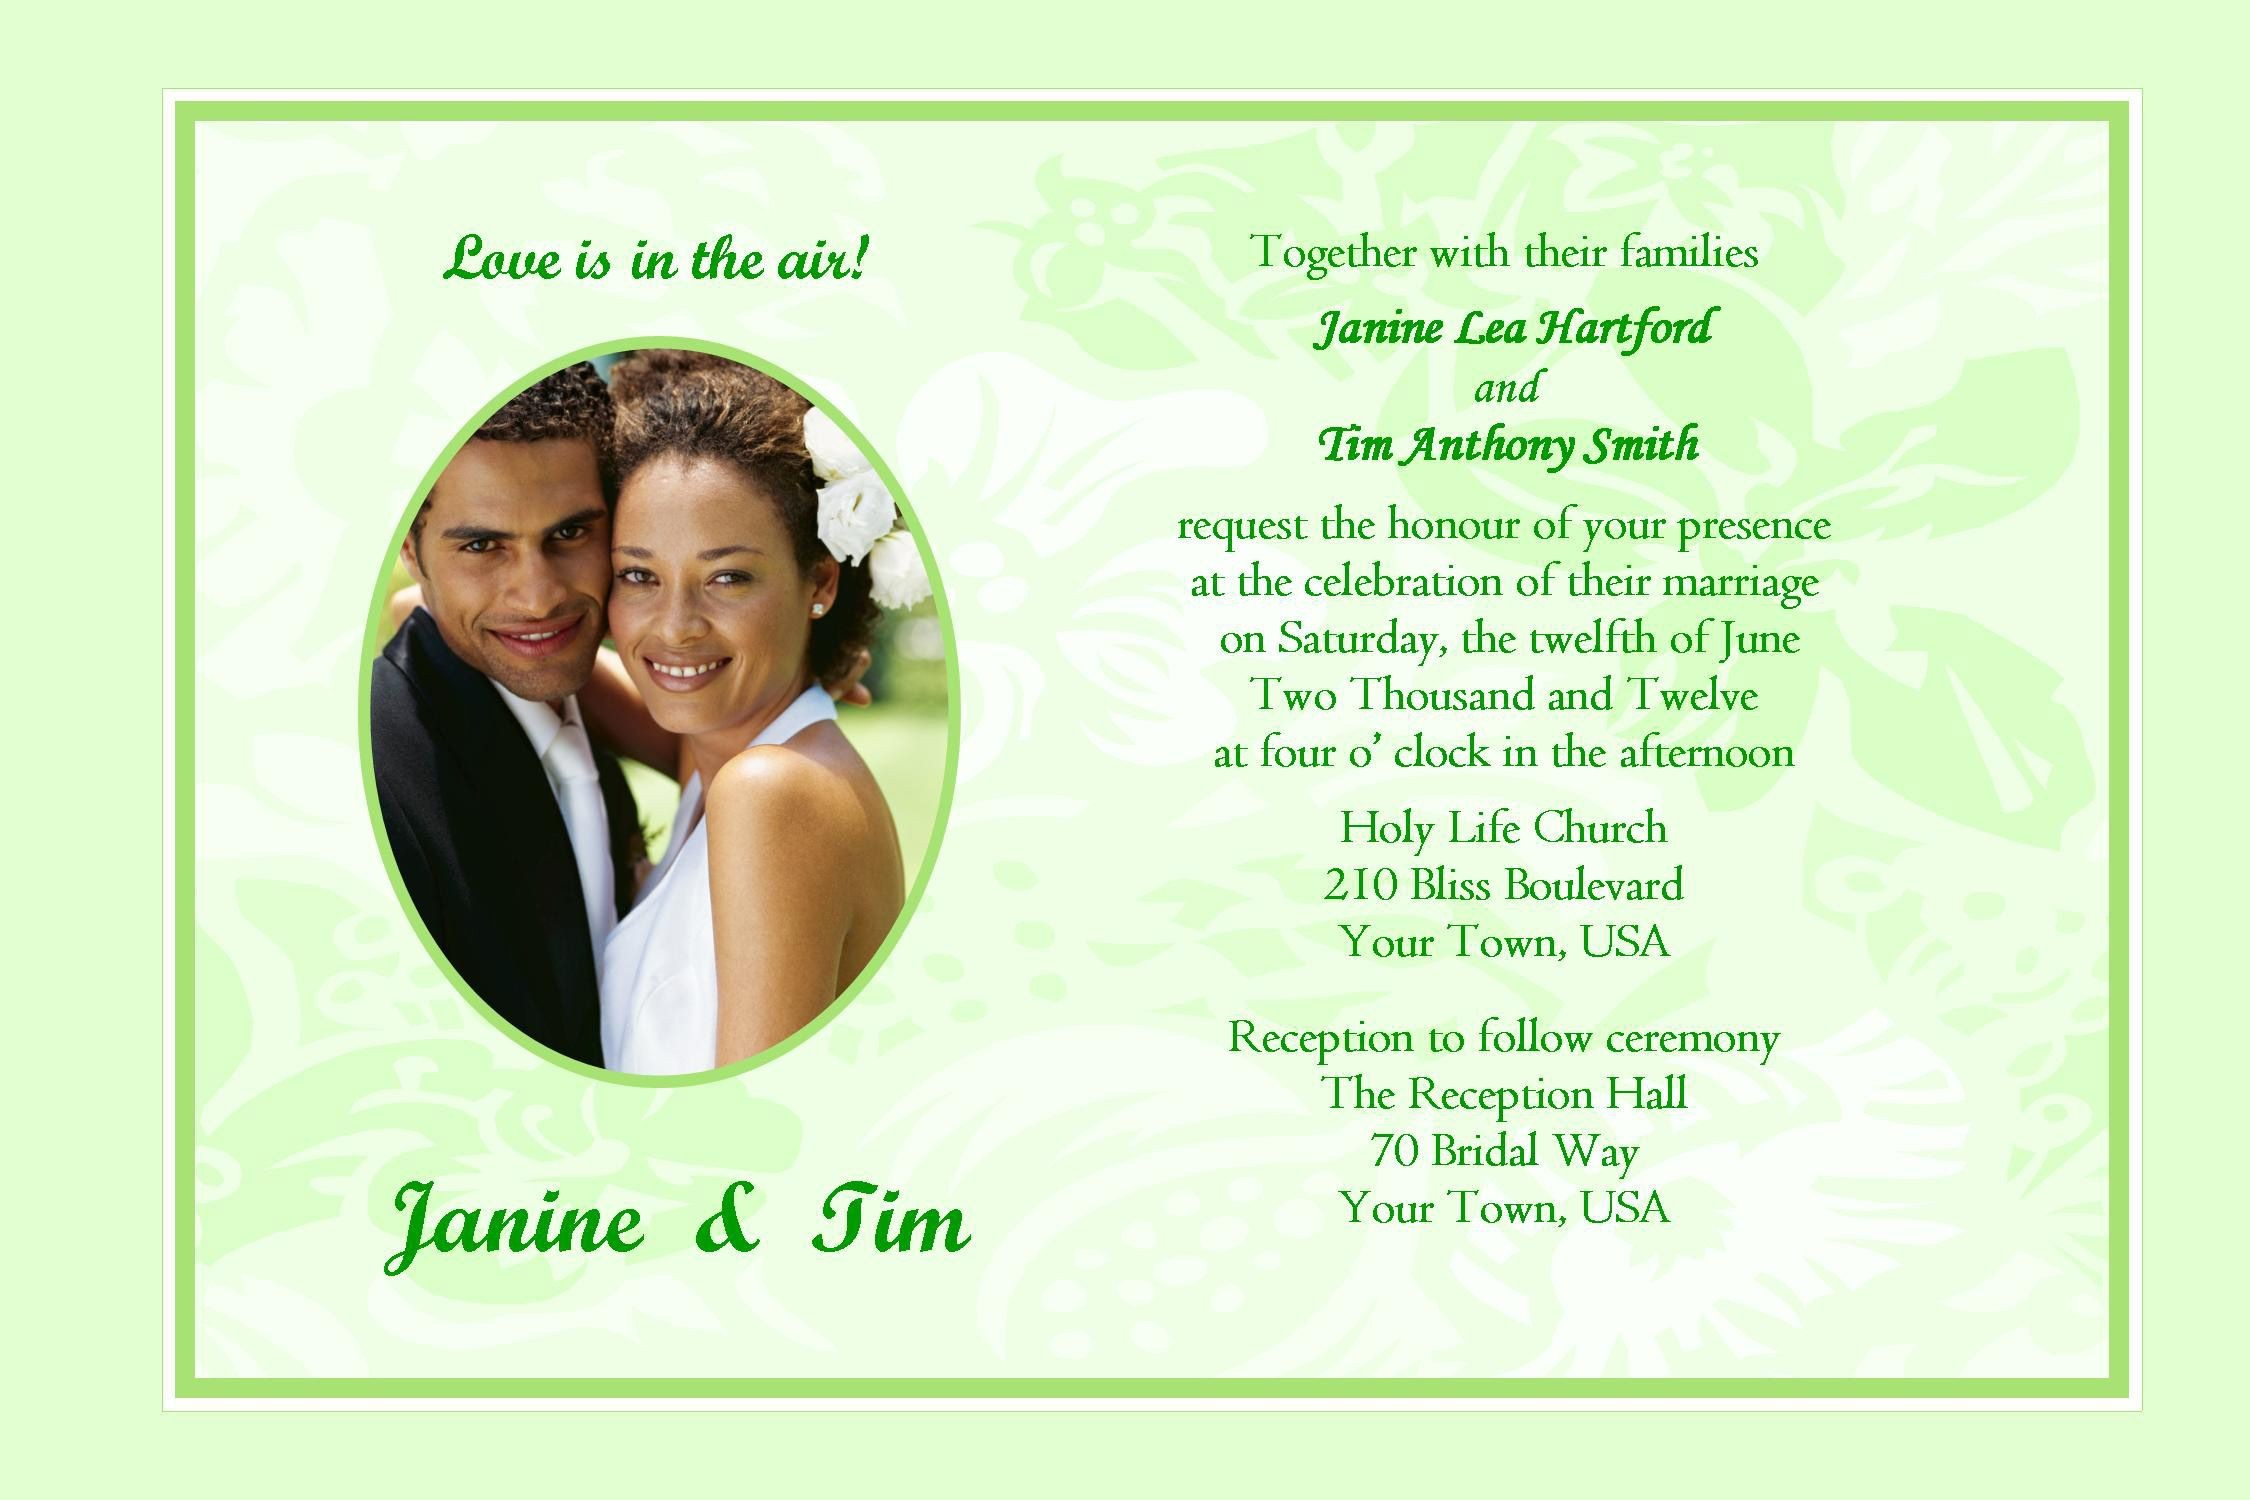 Invitation Cards Samples Wedding New Wedding Invitation Card Samples ...